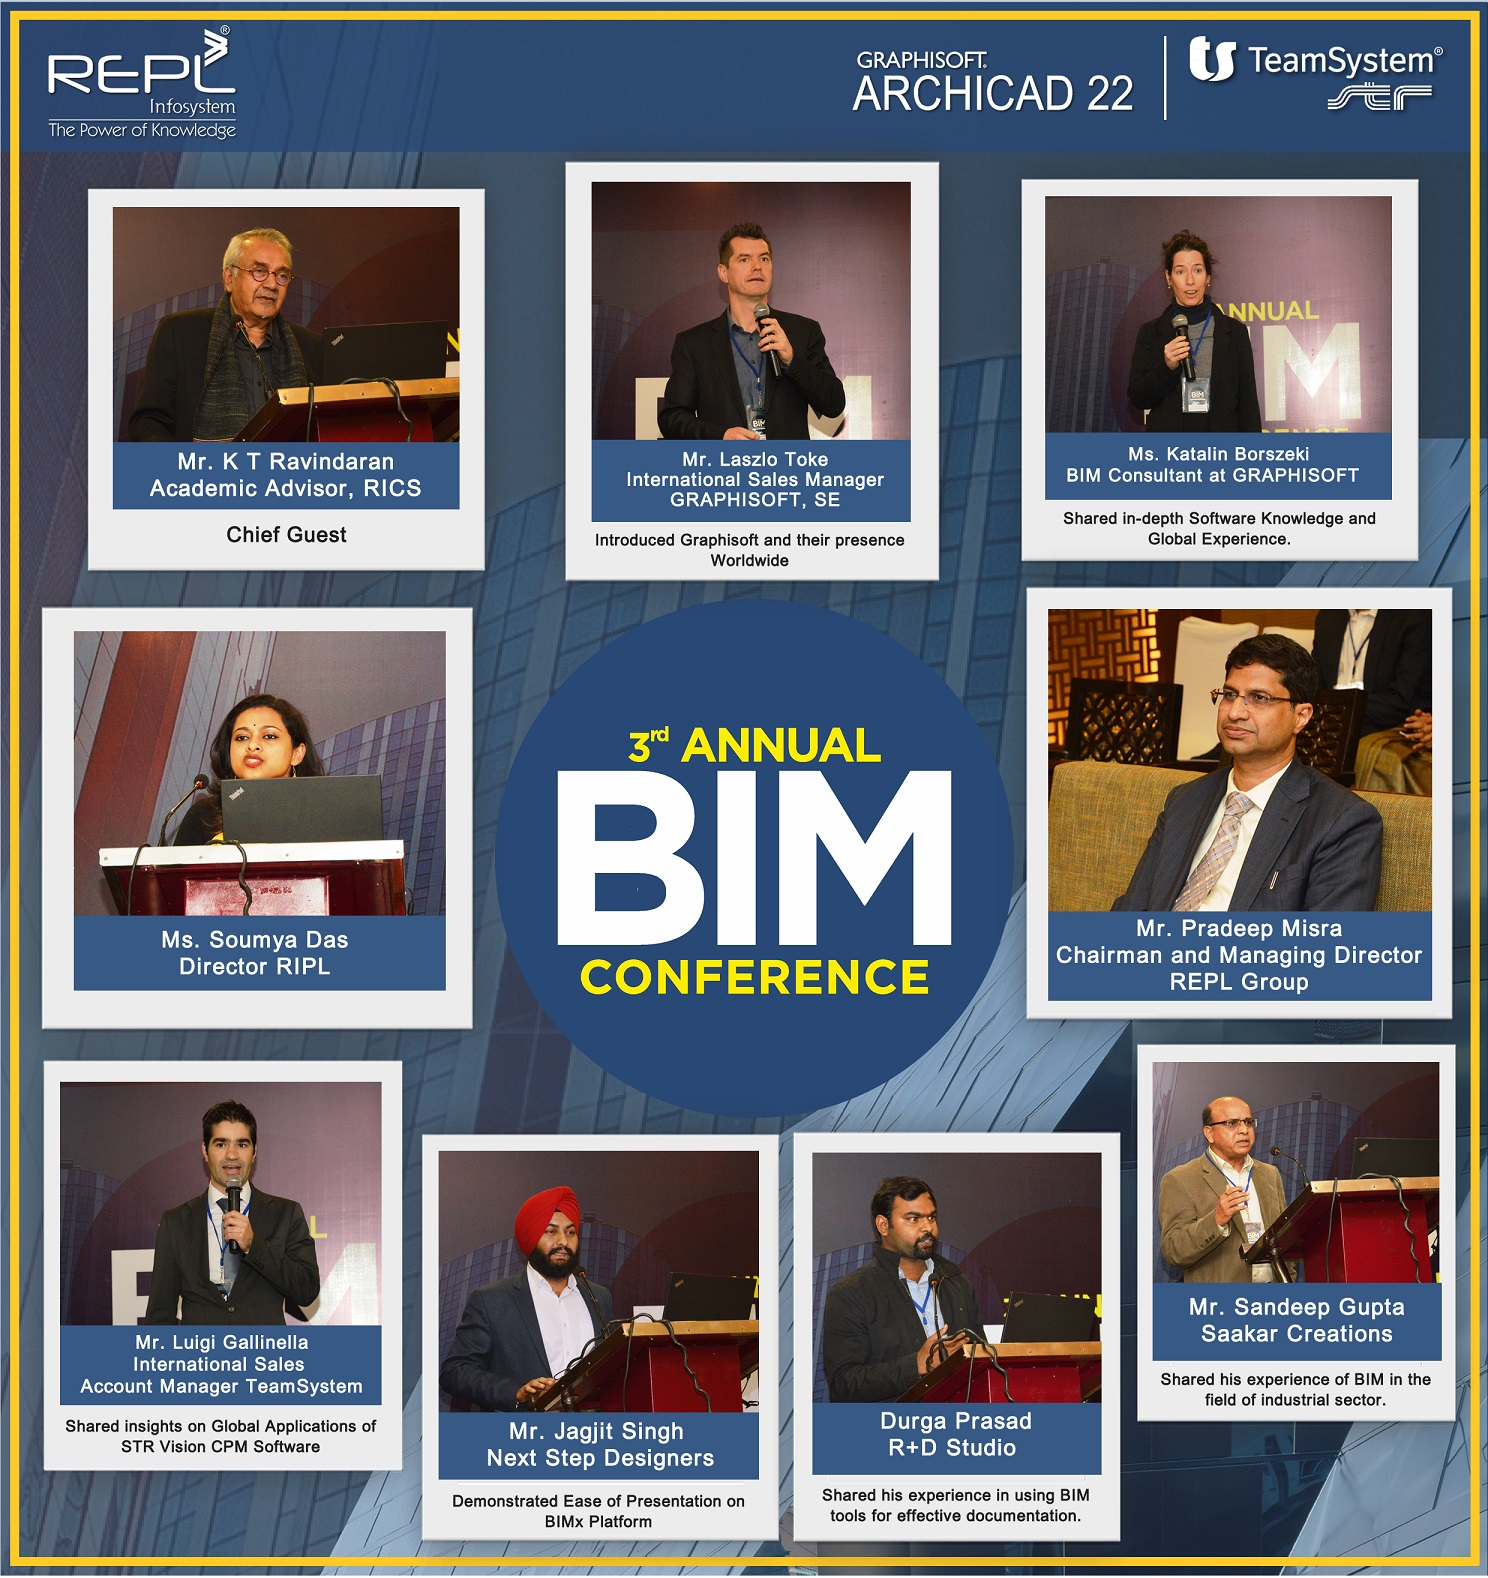 3rd Annual BIM conference on 14th Dec 18 at Crown Plaza, New